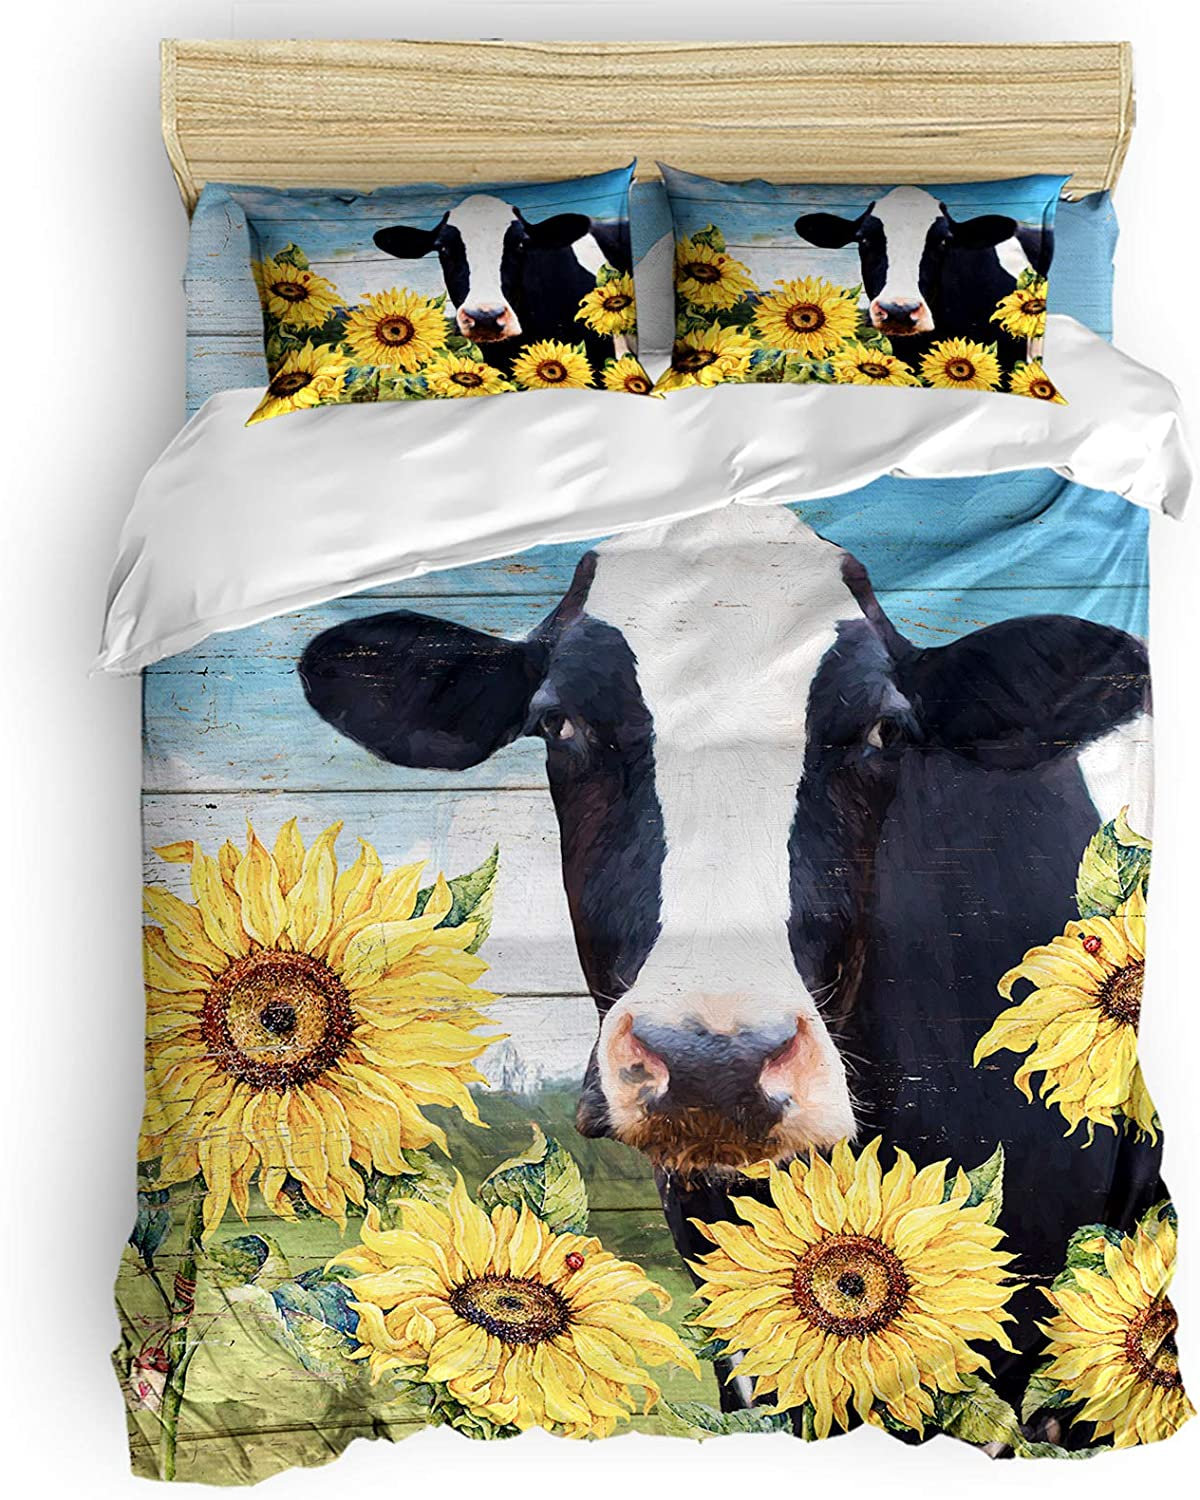 BABE MAPS Luxury Farmhouse Duvet Cover Shipping included Set Bedding 4 Accessories of wi